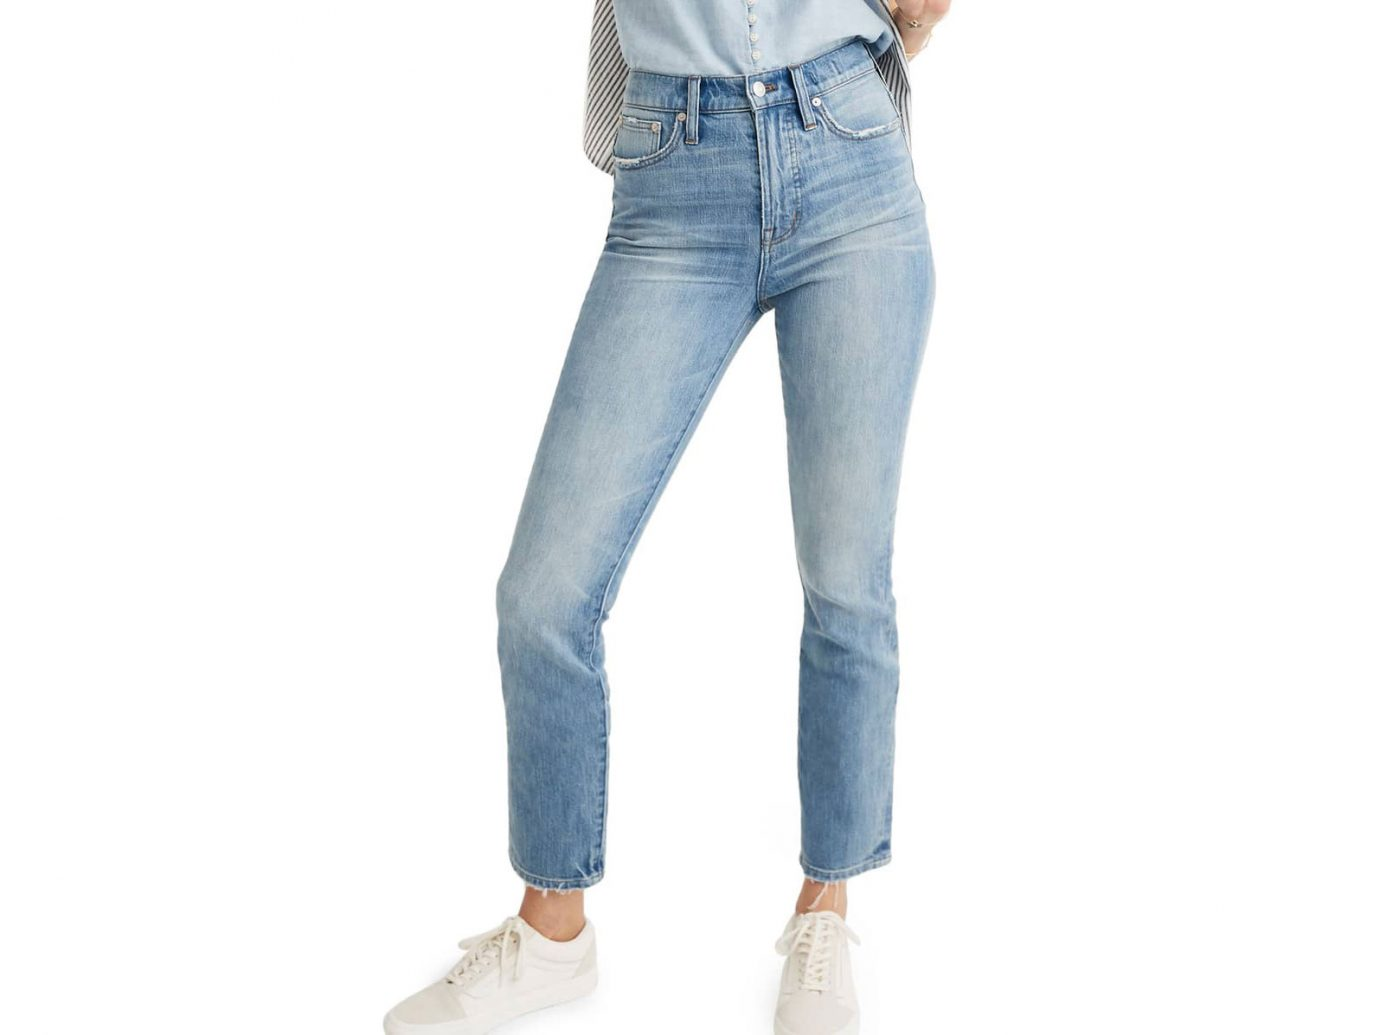 Madewell The Perfect Vintage Heart Patch High Waist Jeans